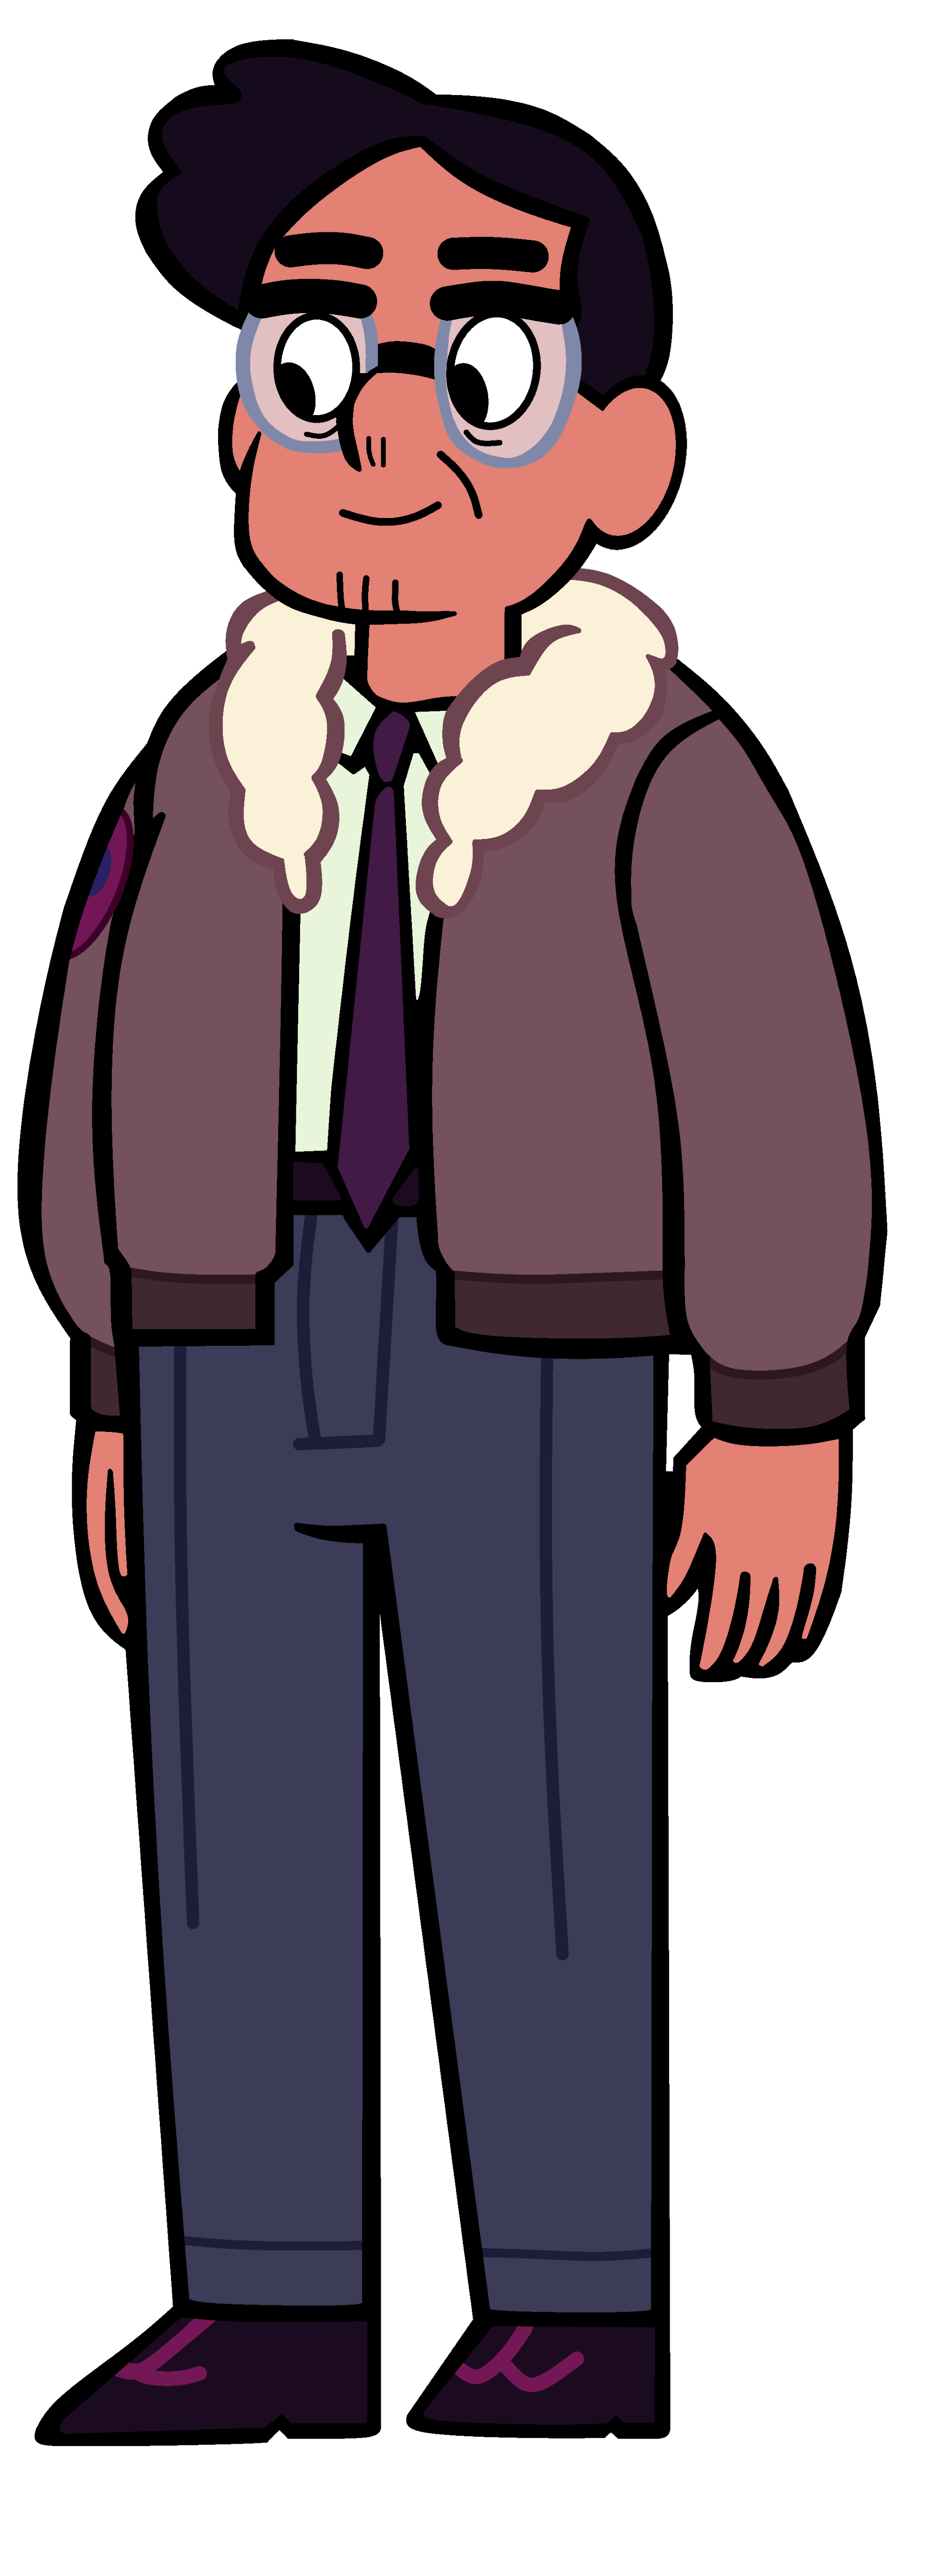 Doug maheswaran steven universe. Worry clipart uneasy